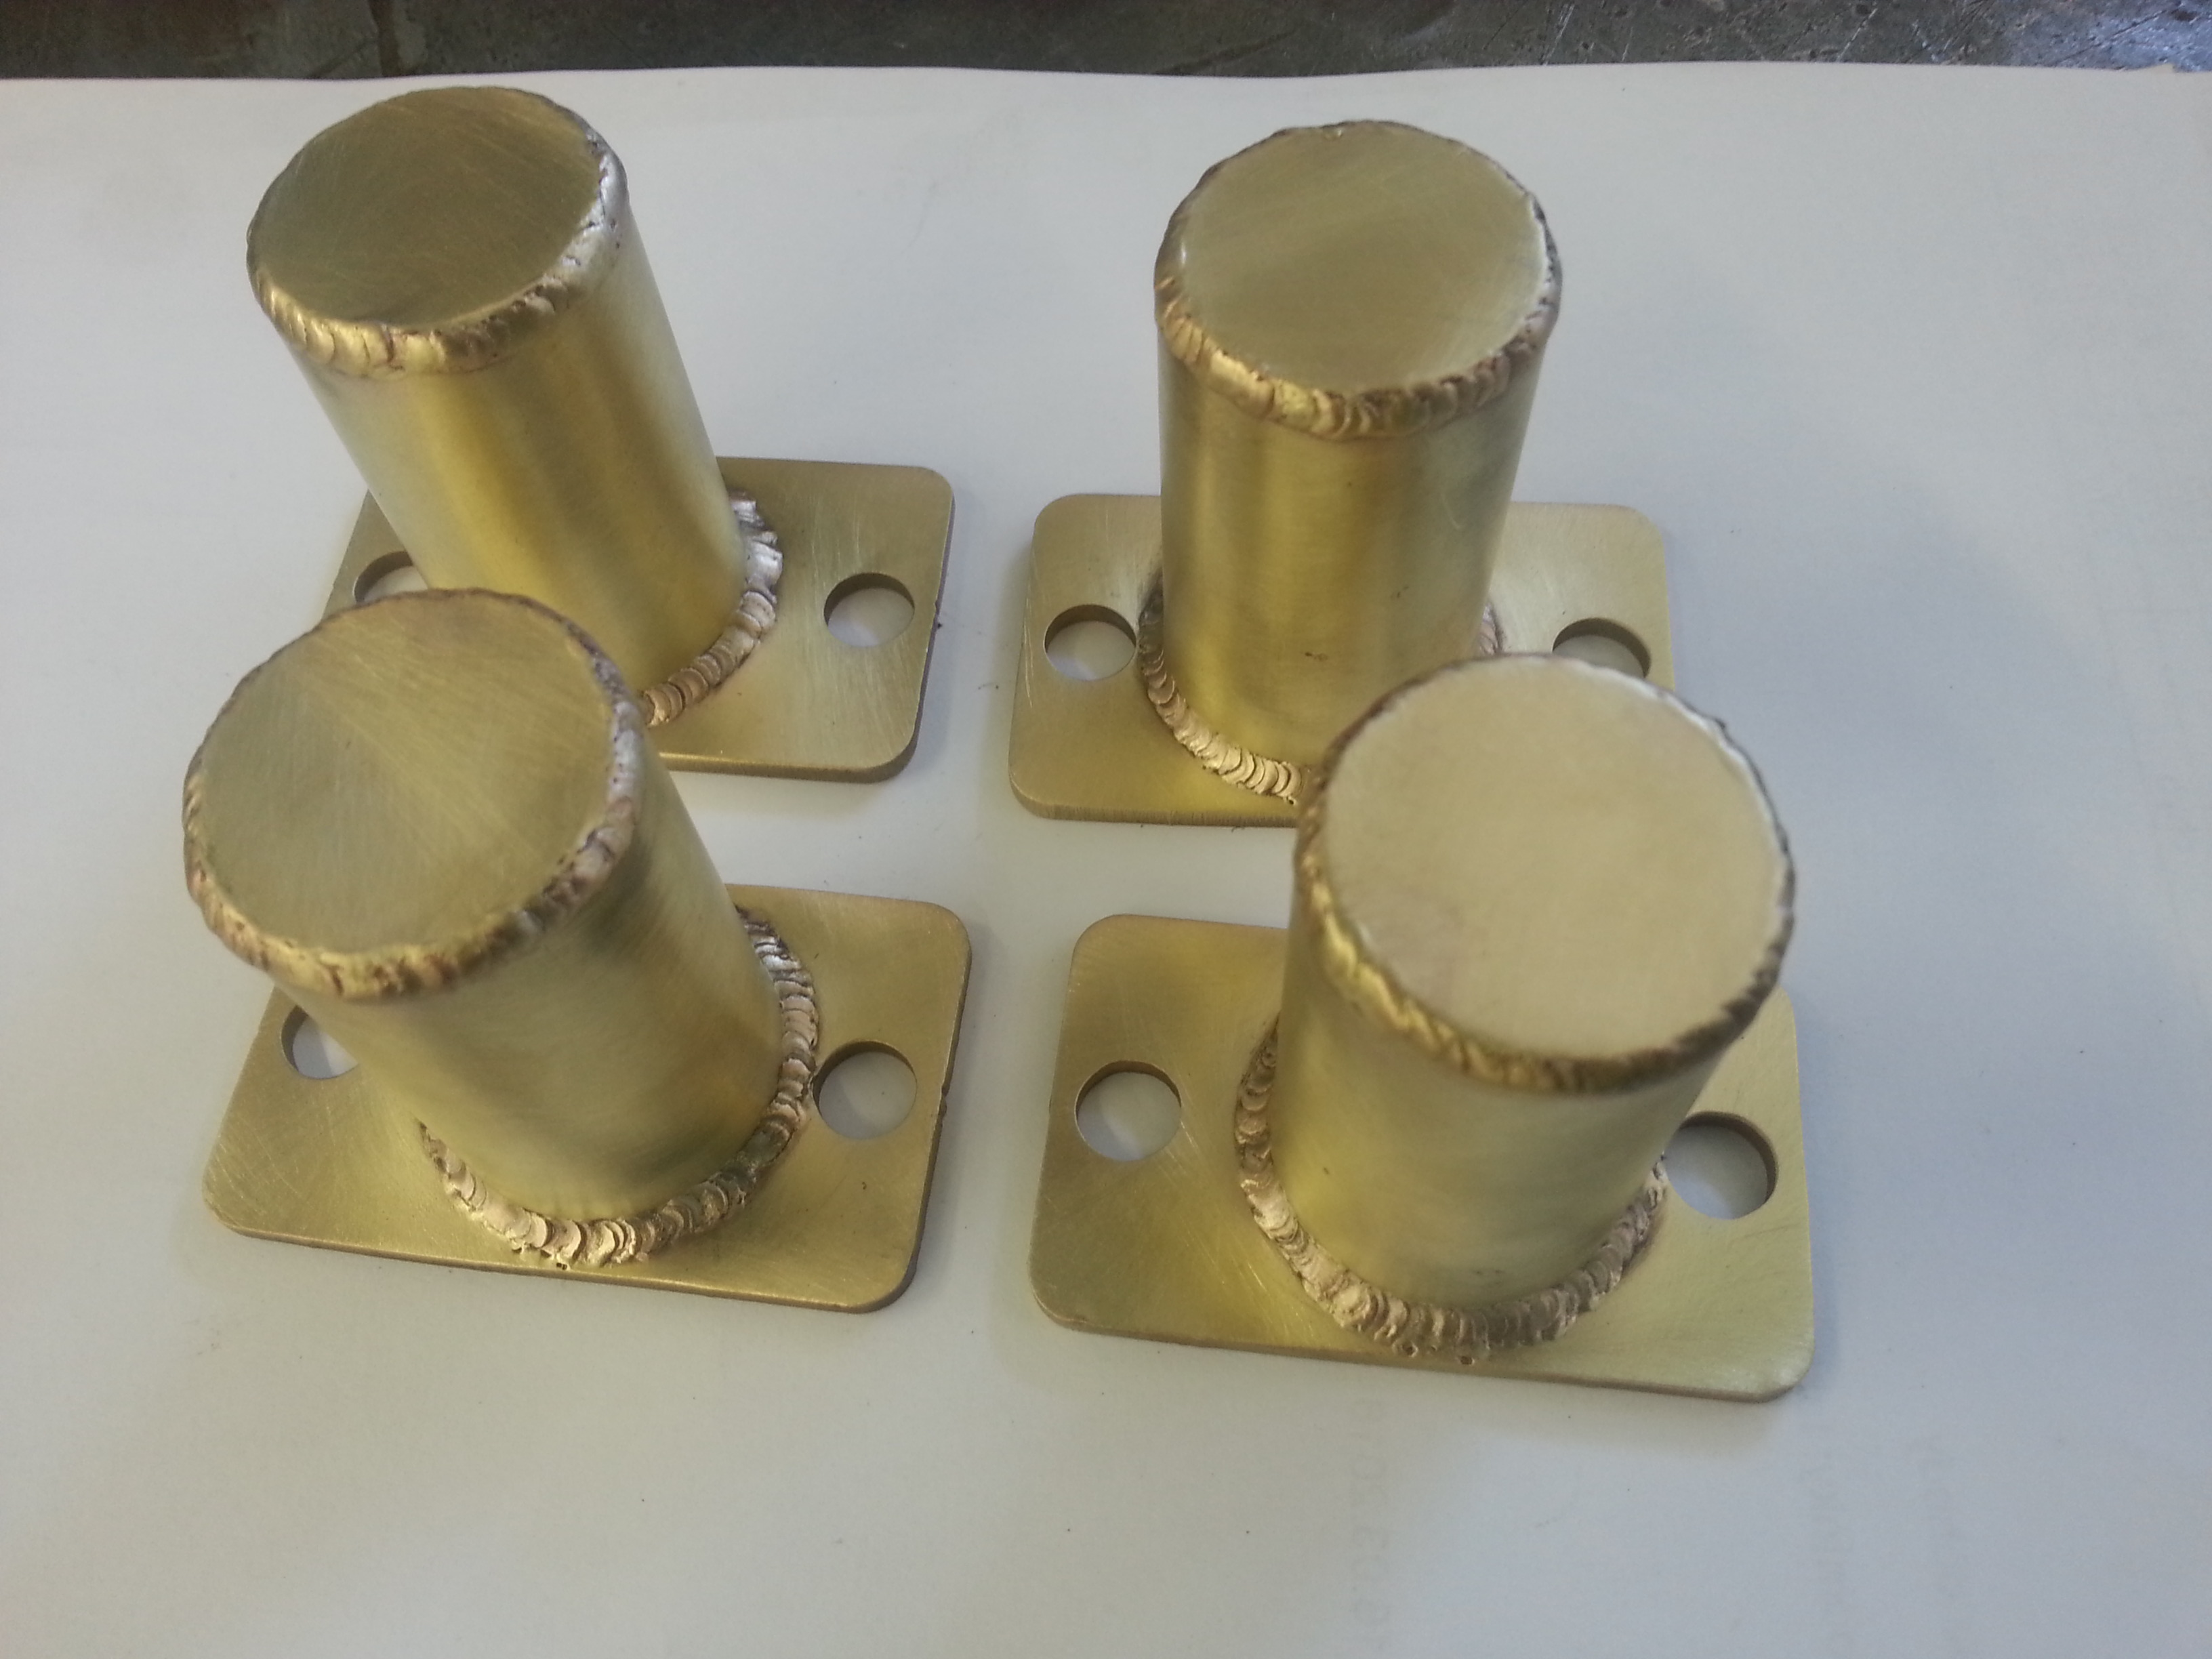 Manufacture from brass